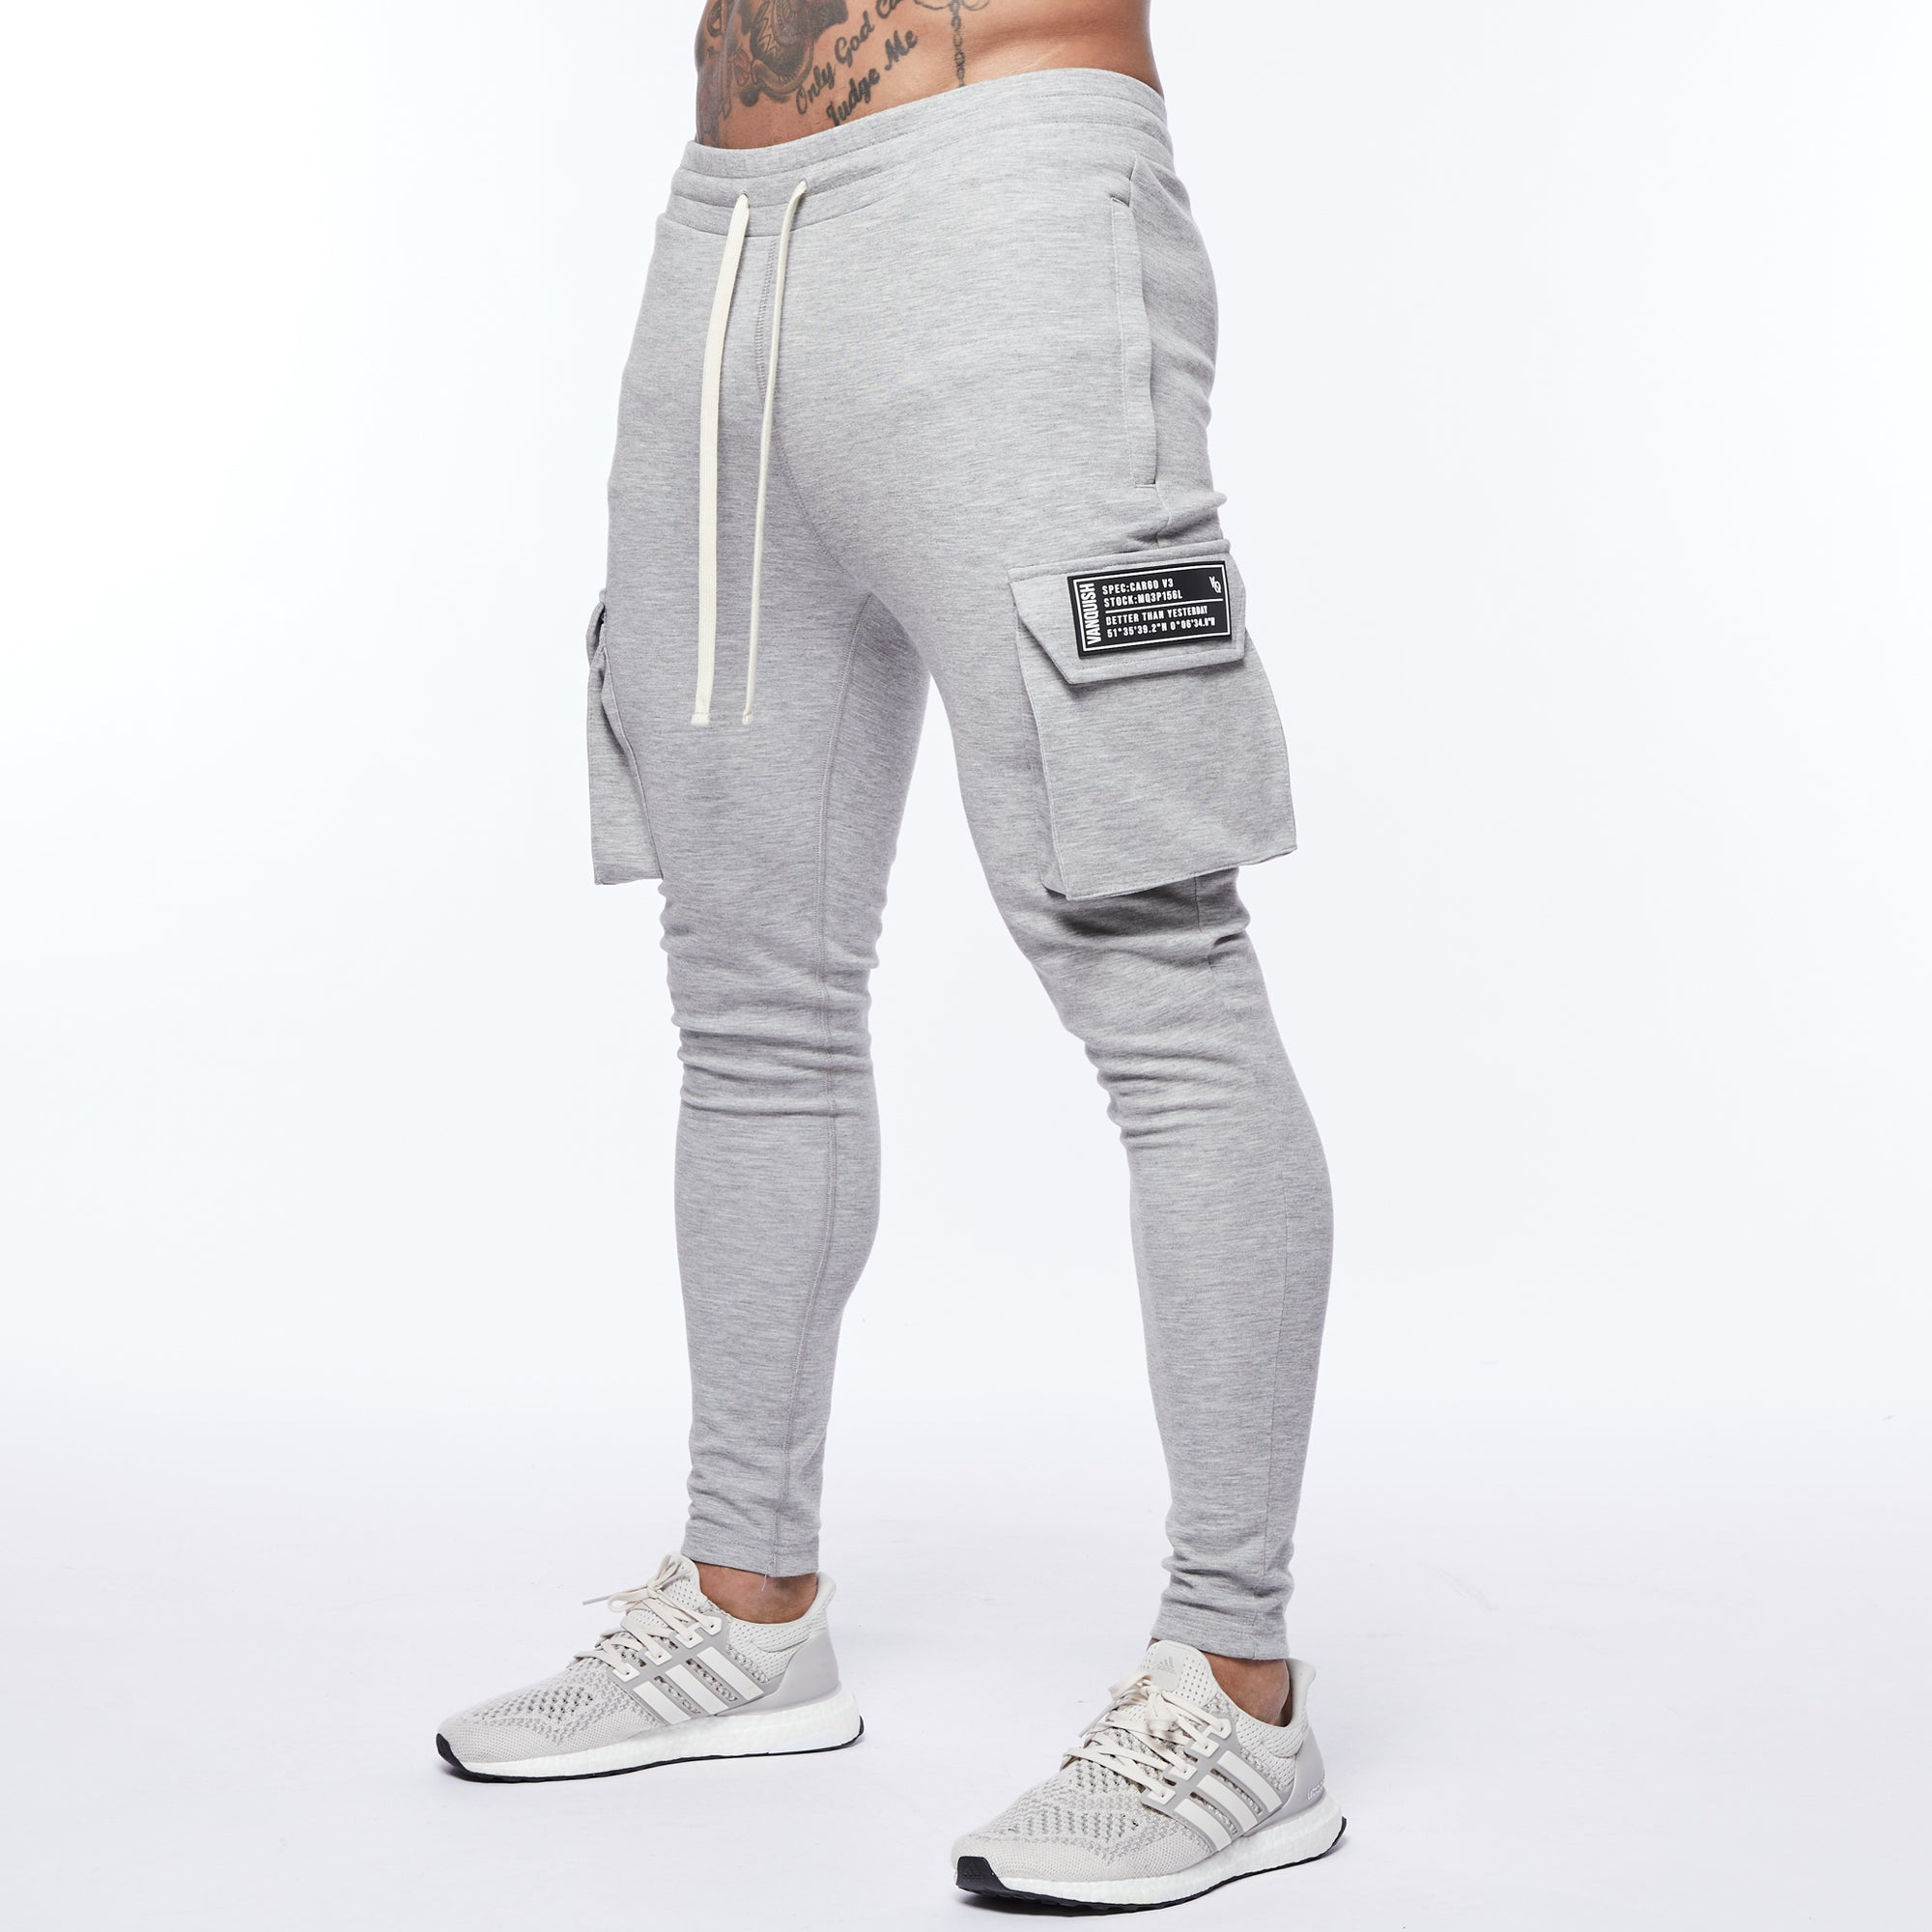 Vanquish Essential Ash Grey Tapered Cargo Sweatpants